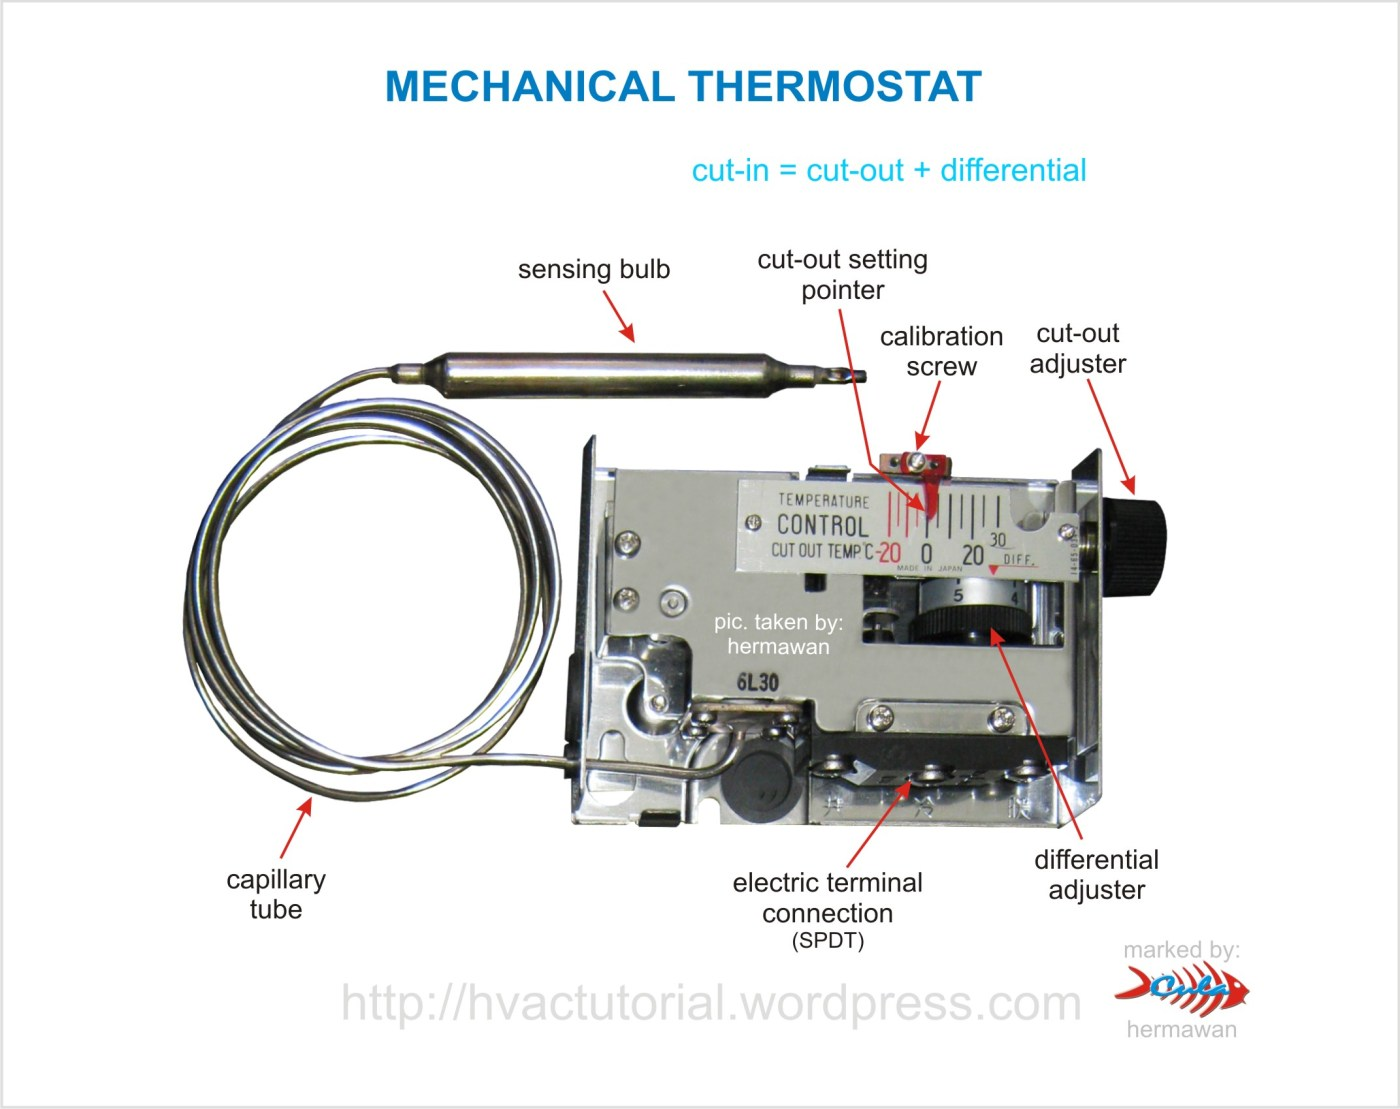 mechanical thermostat hermawan s blog refrigeration and air conditioning systems  [ 1400 x 1110 Pixel ]